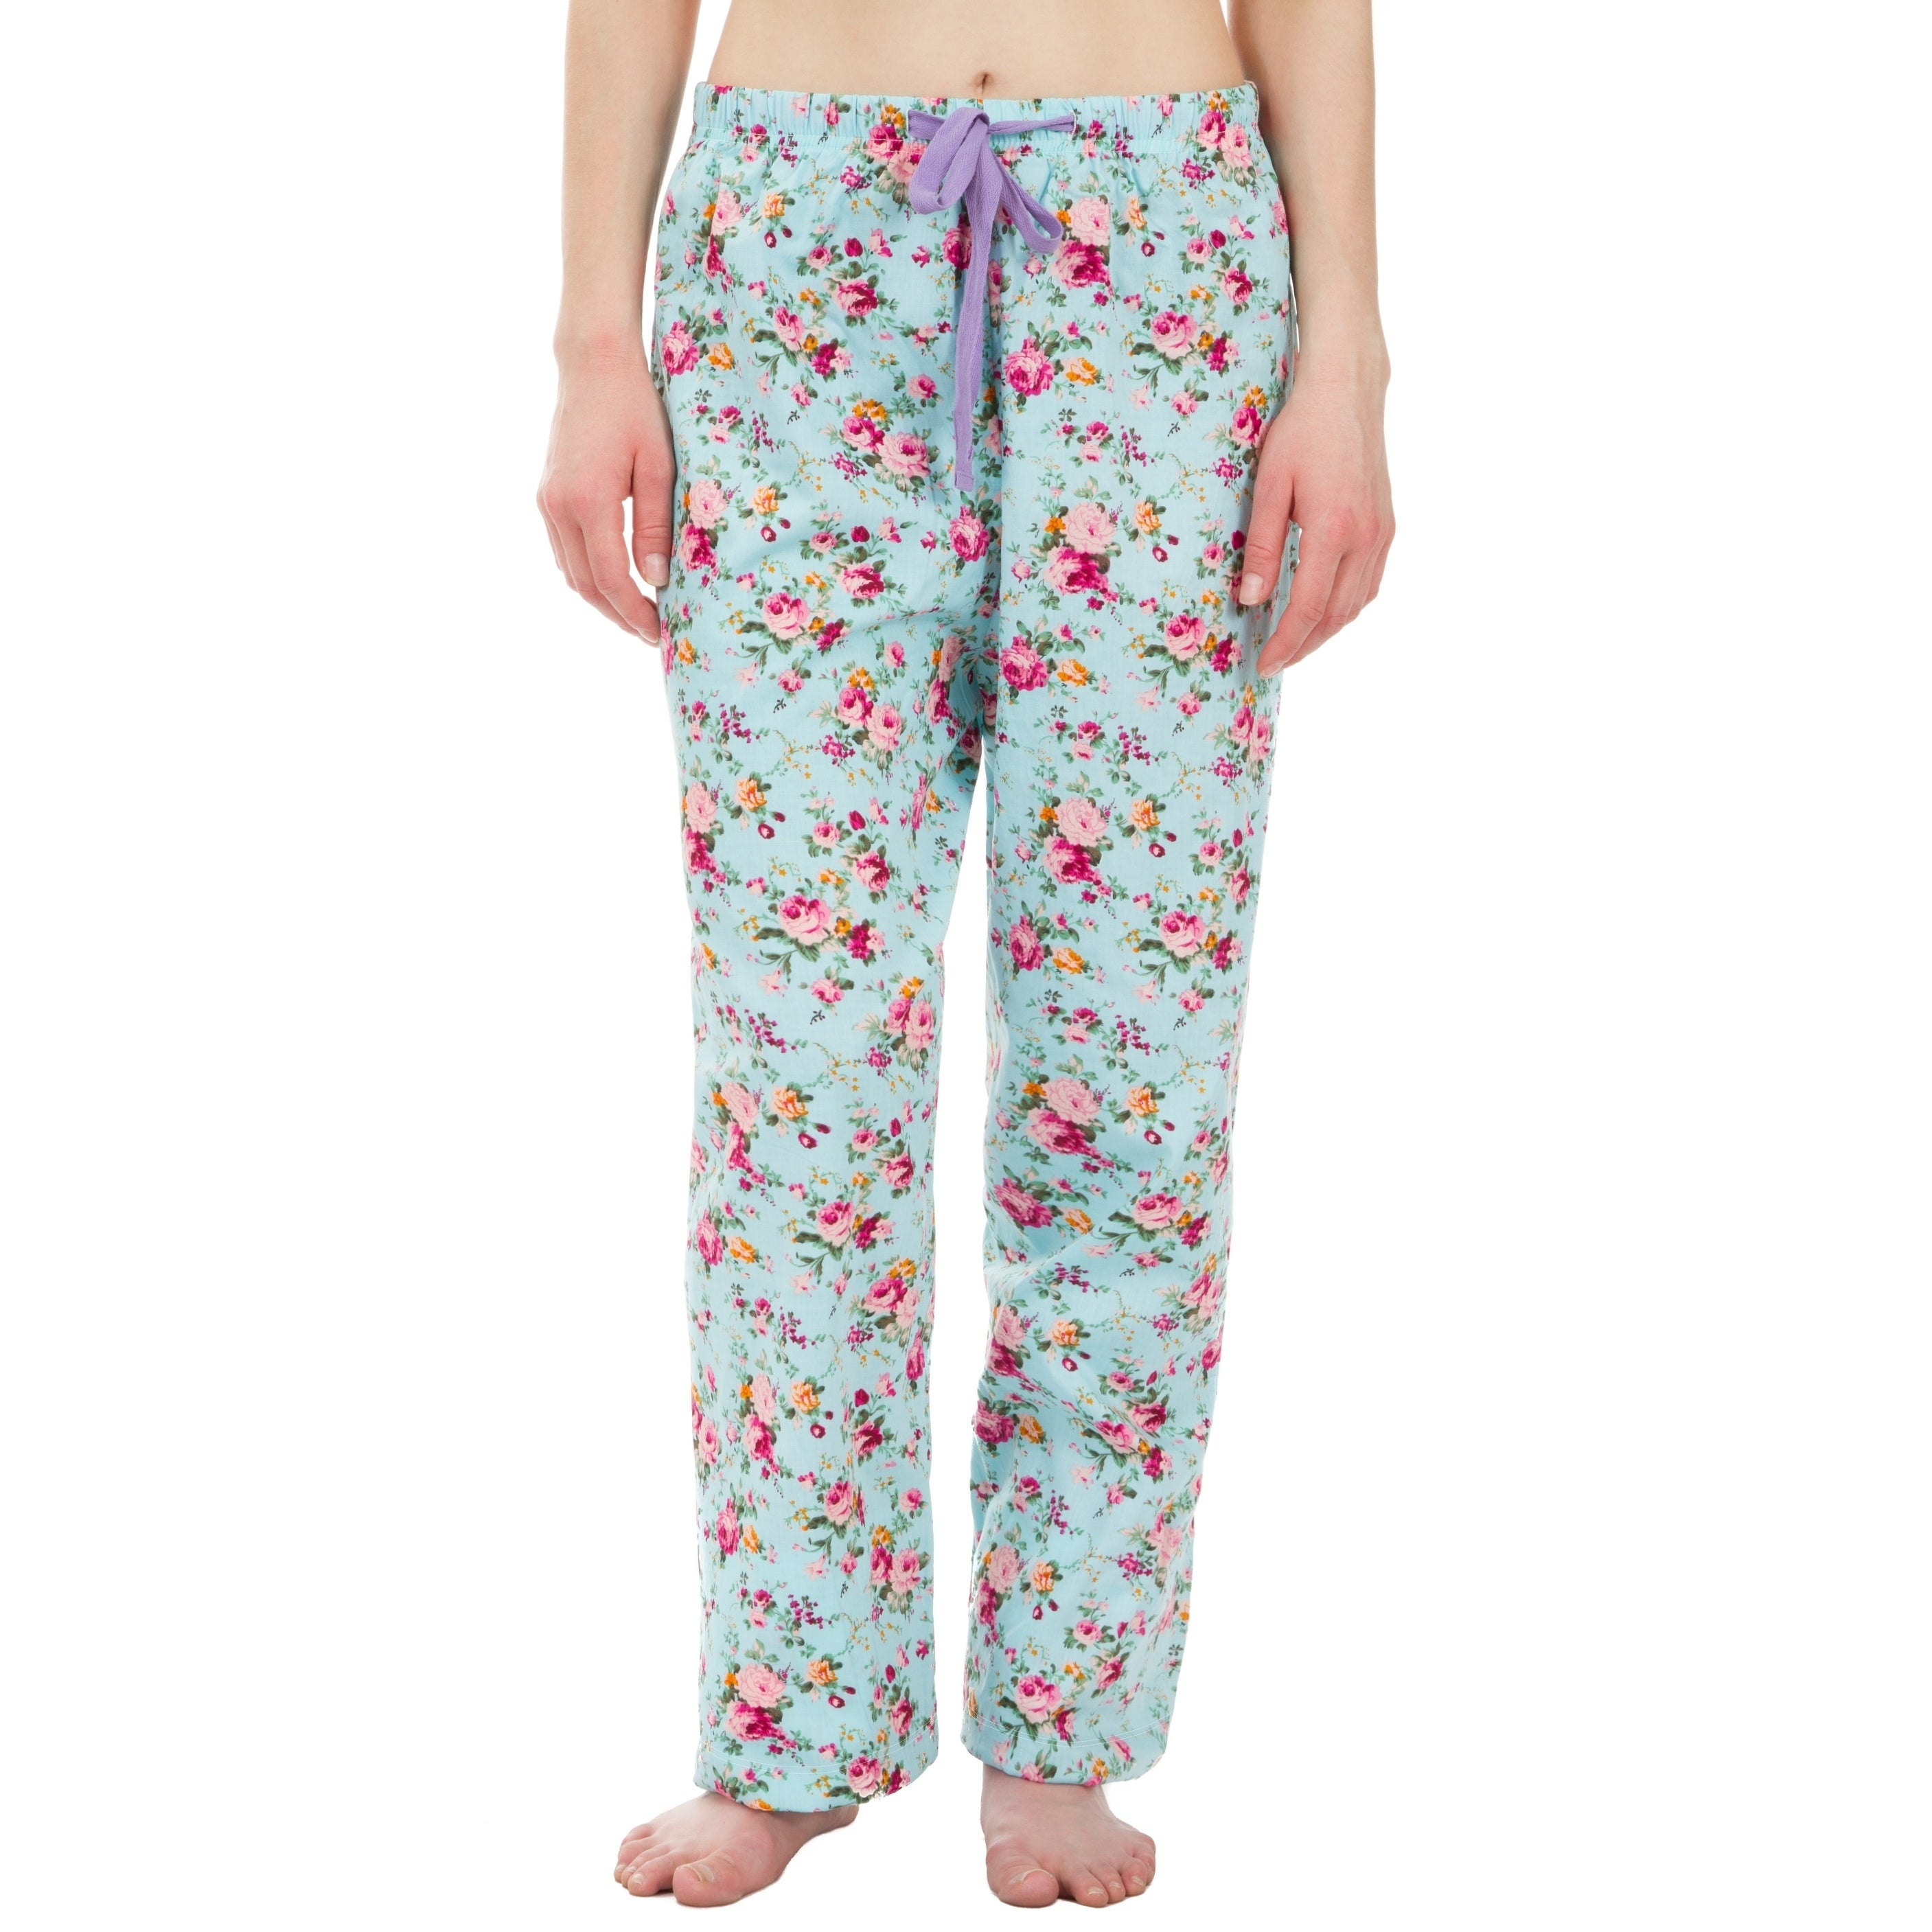 079500a374 Shop Leisureland Floral Cotton Poplin Pajama Lounge Pants Light Blue ...